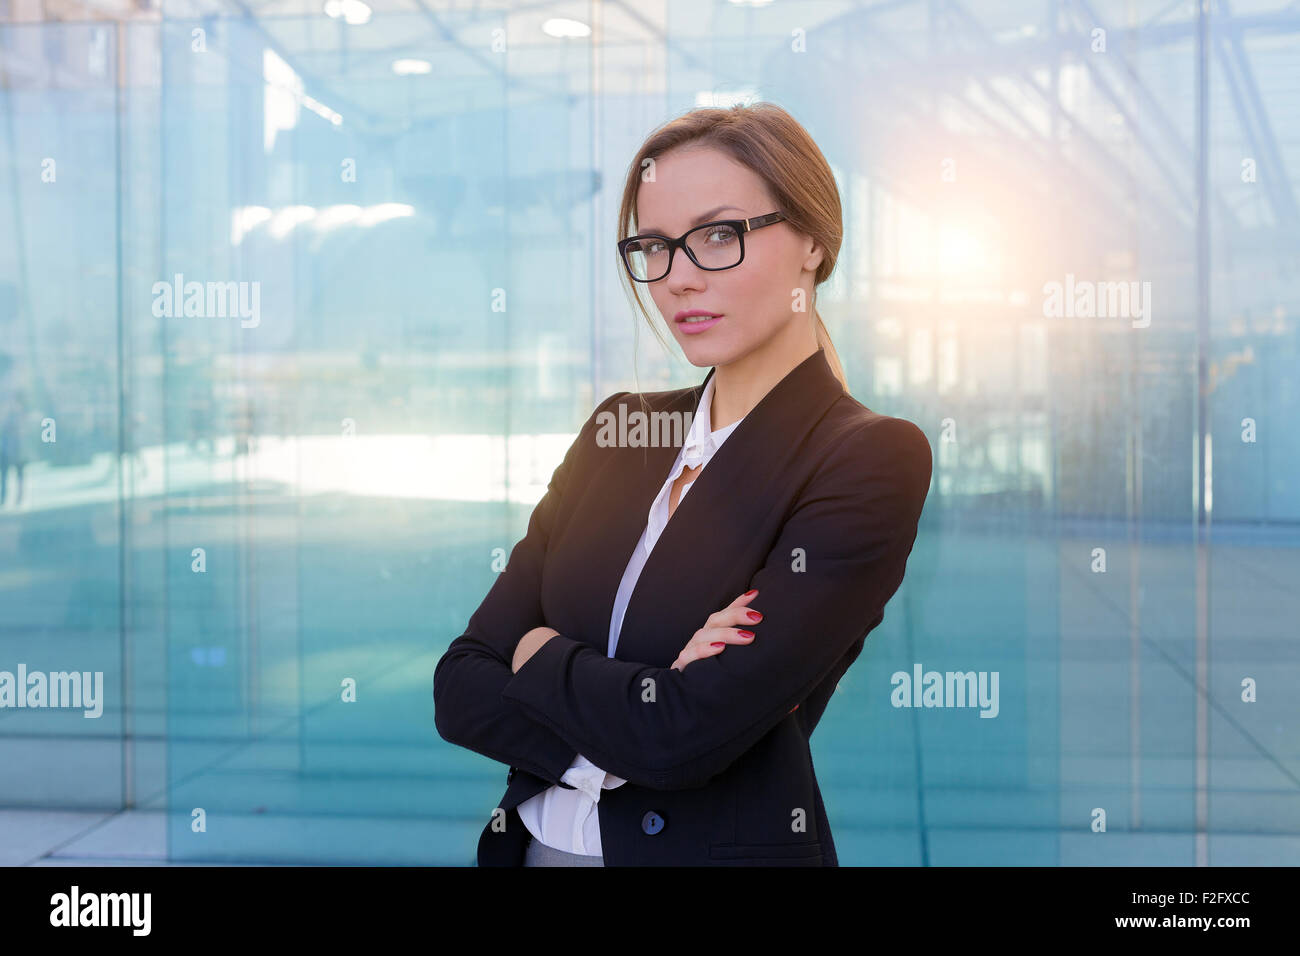 Portrait of a Businesswoman - Stock Image